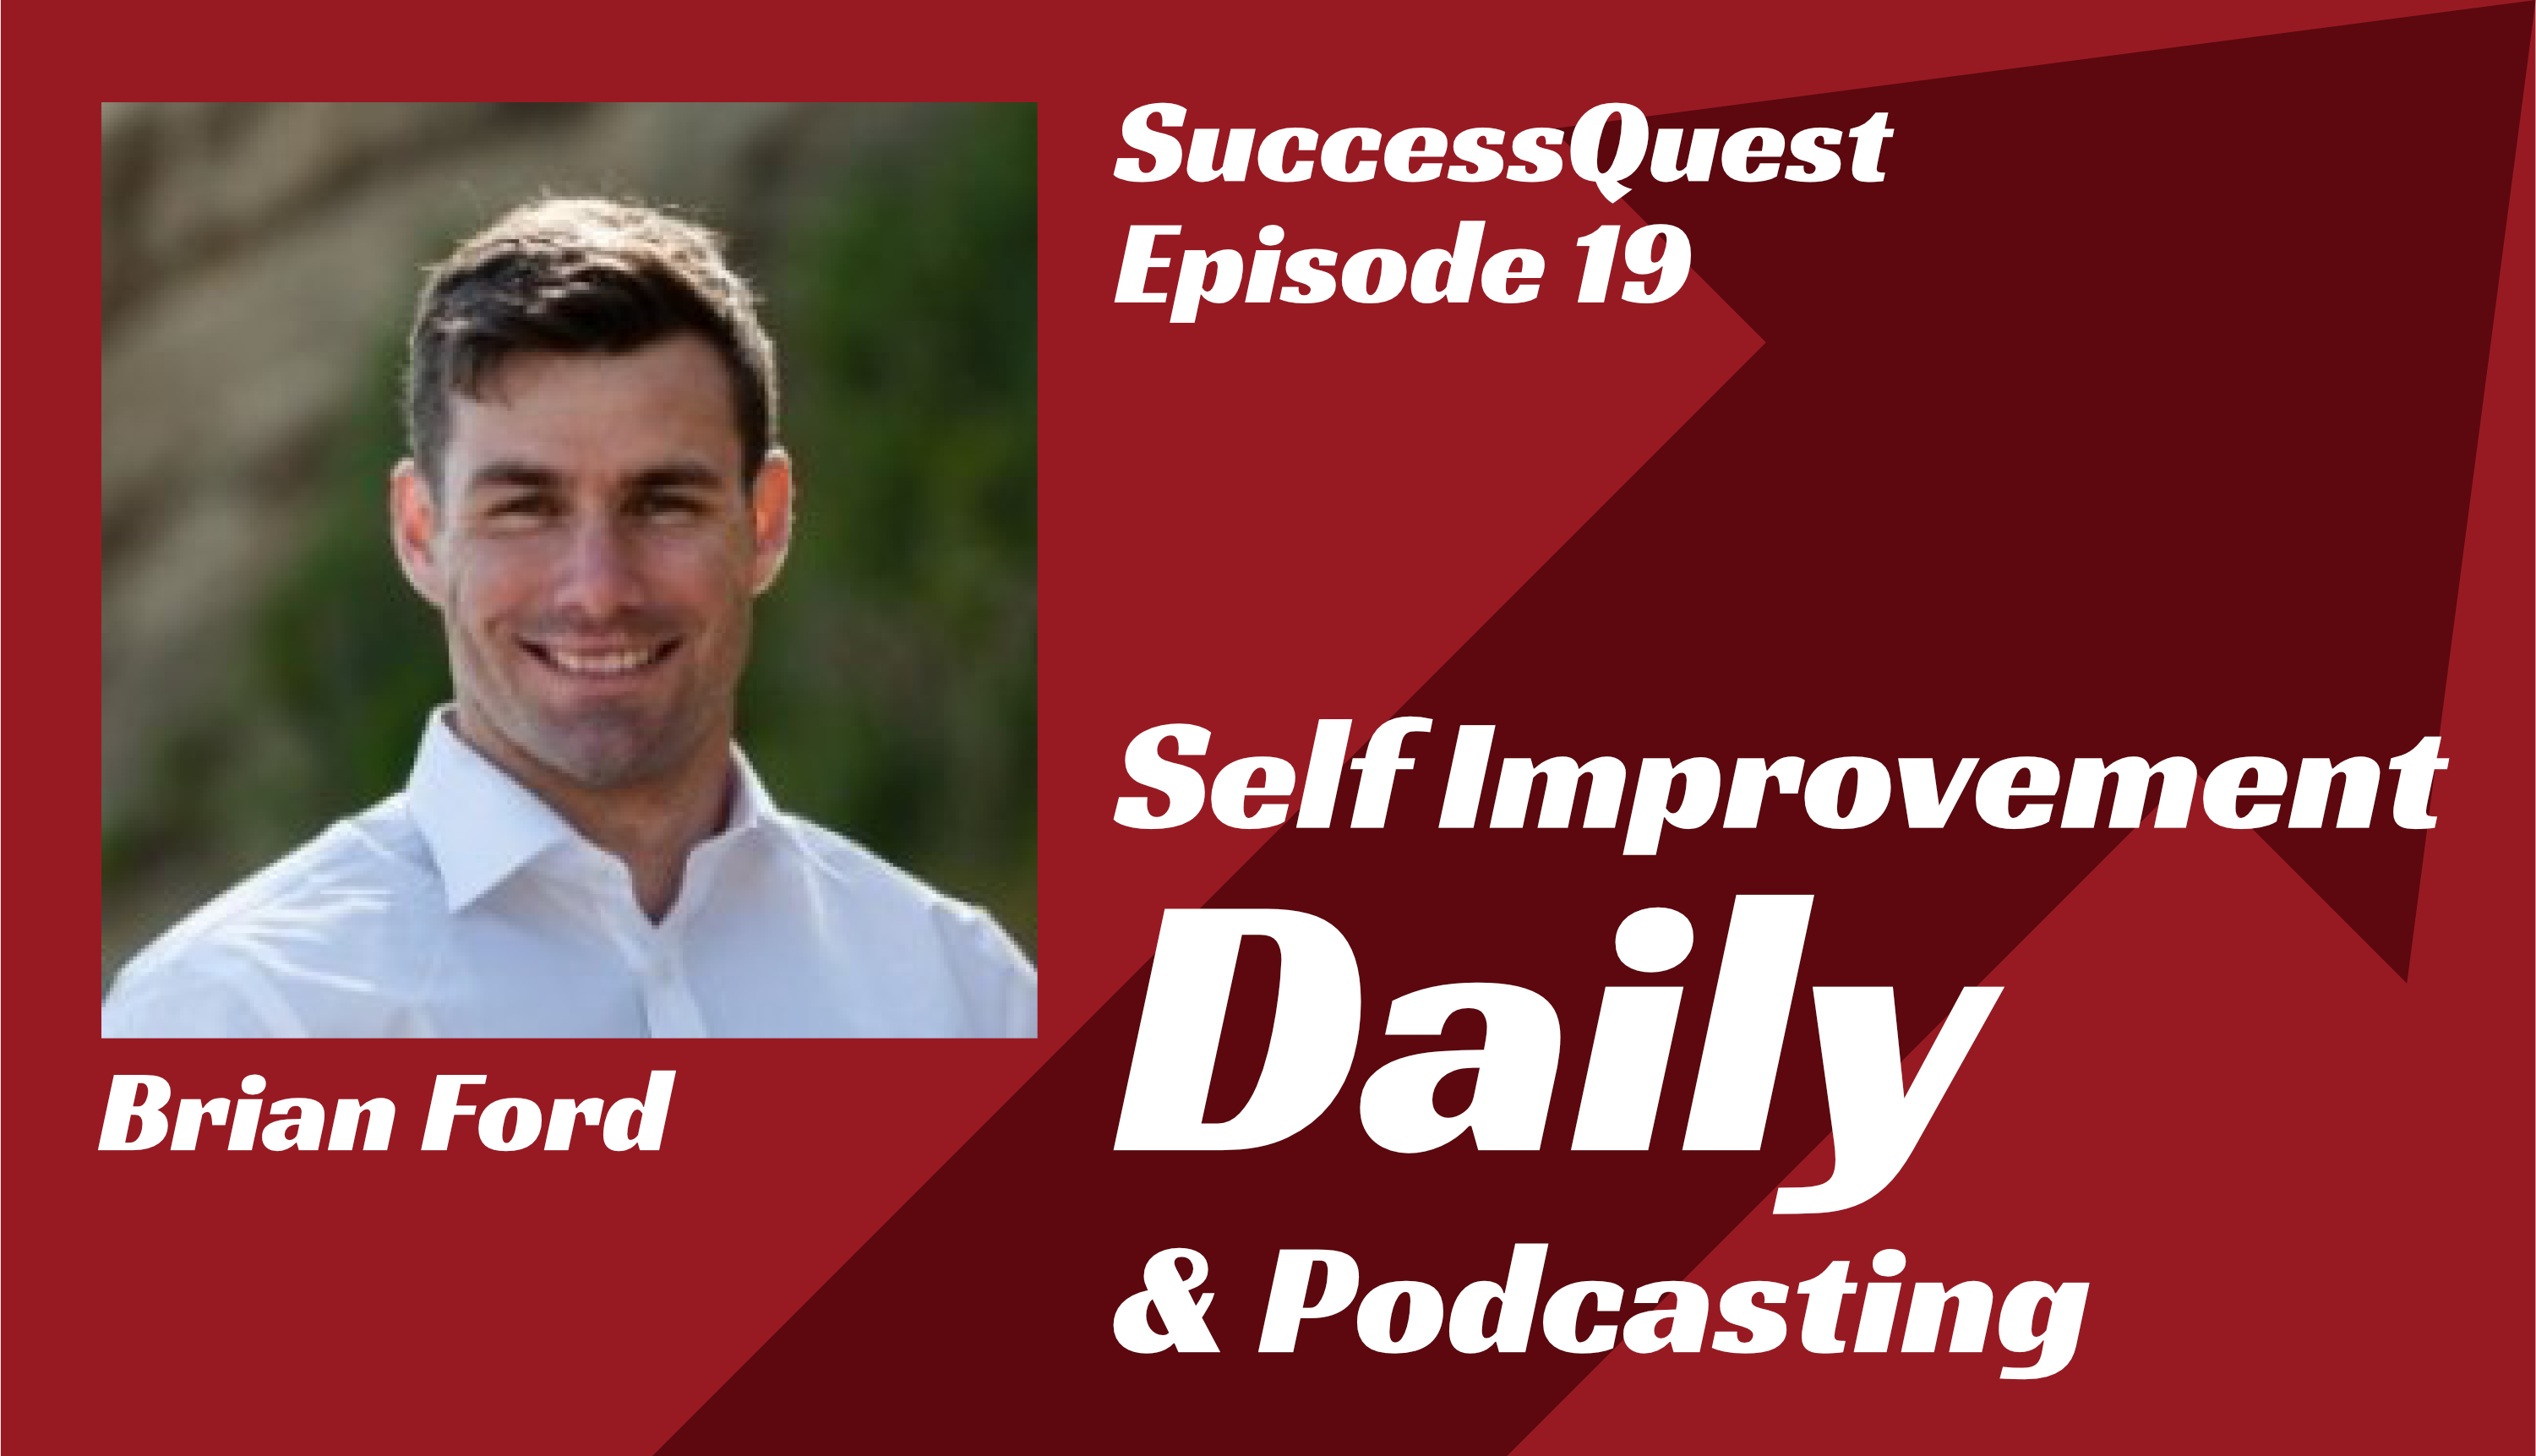 Brain Ford Self Improvement Daily Podcast SuccessQuest